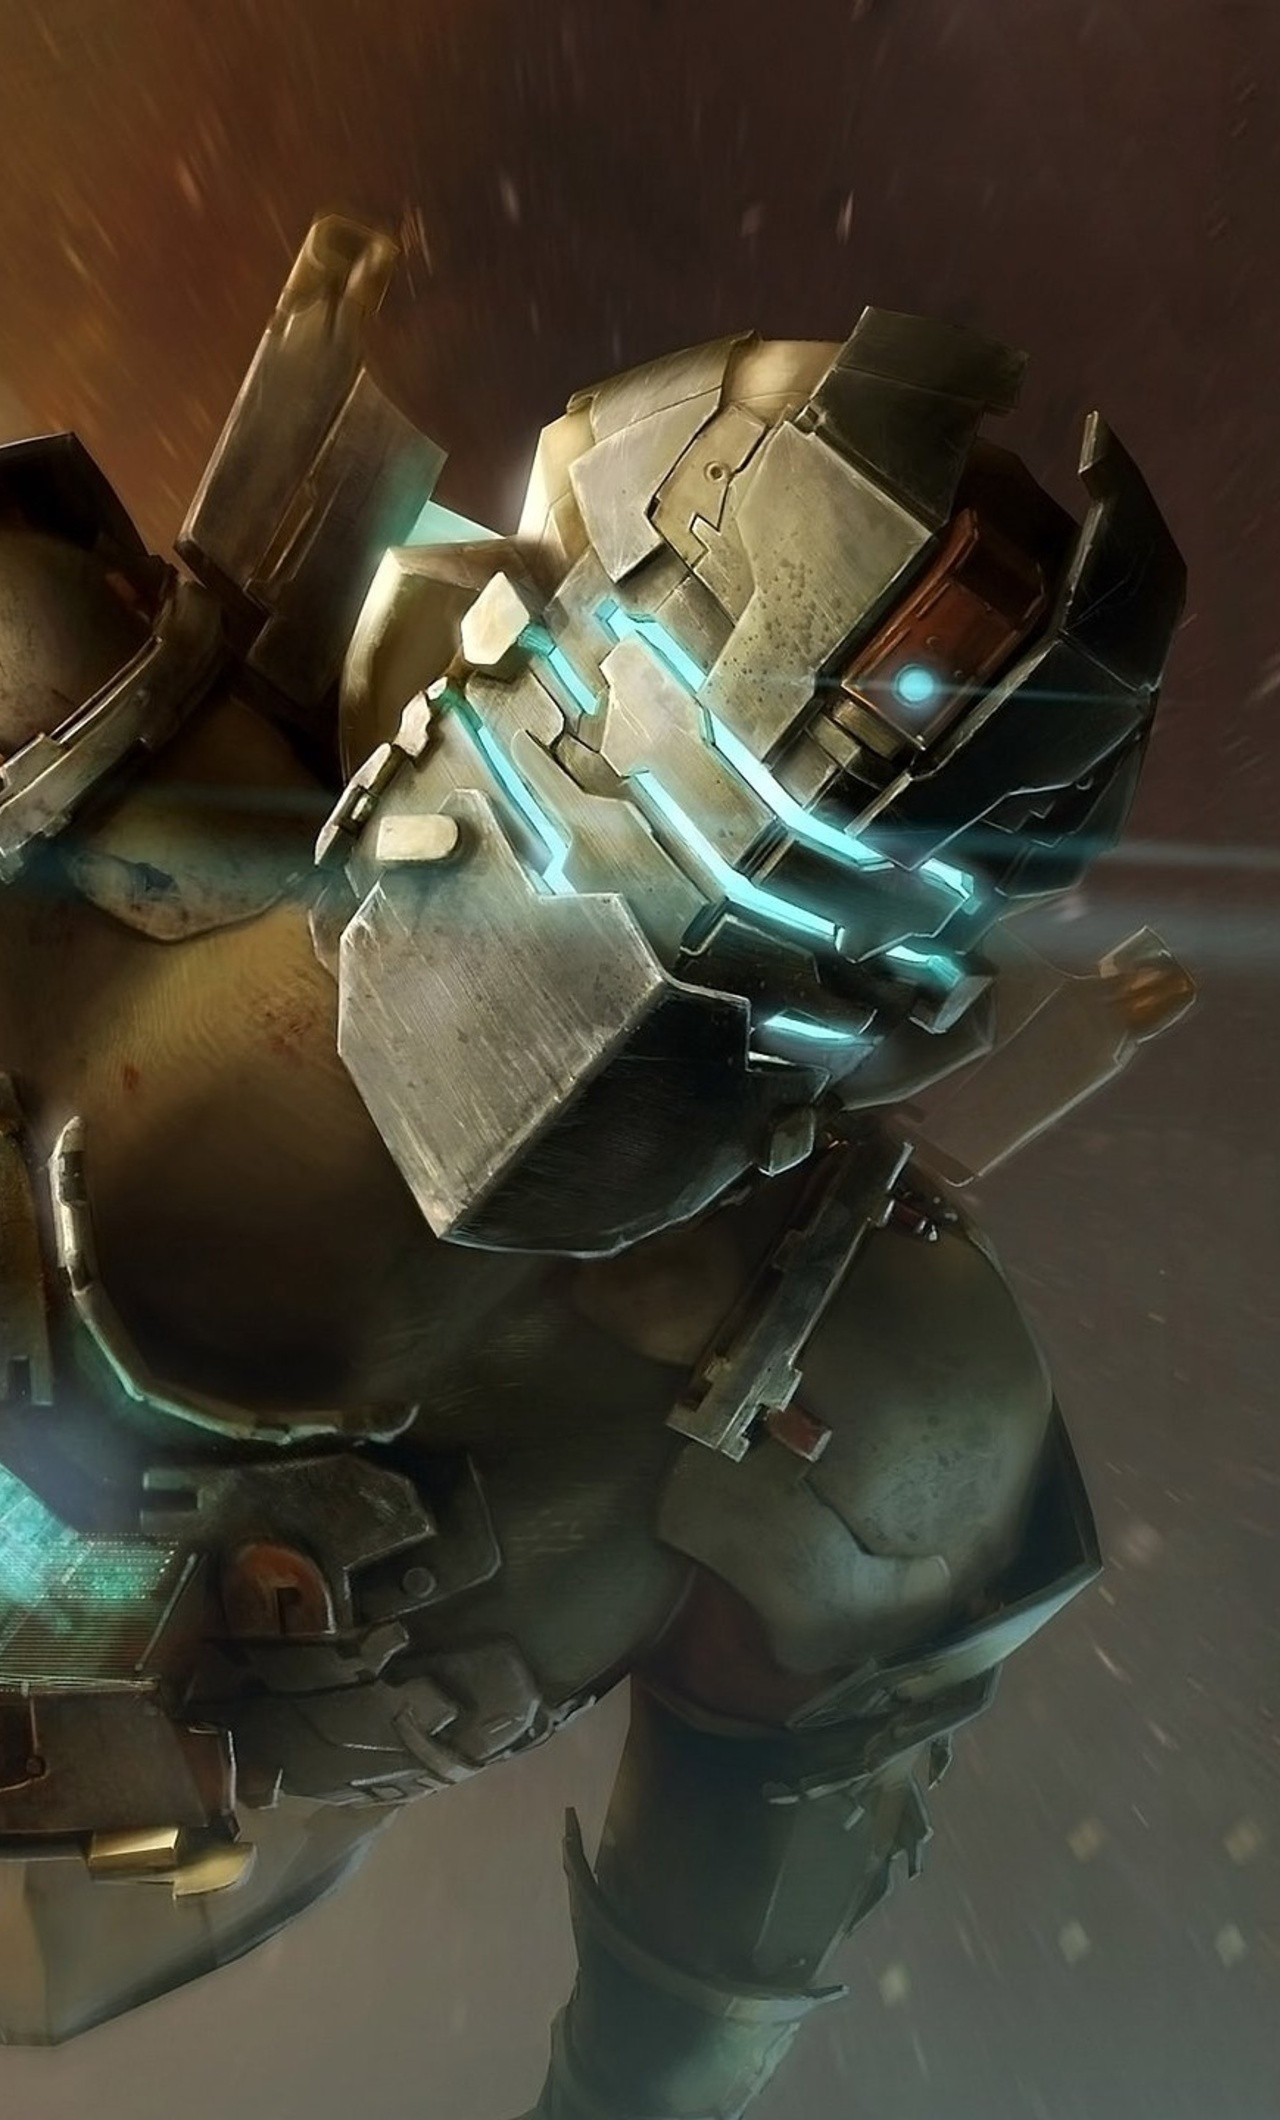 1280x2120 Dead Space 2 Video Game Iphone 6 Hd 4k Wallpapers